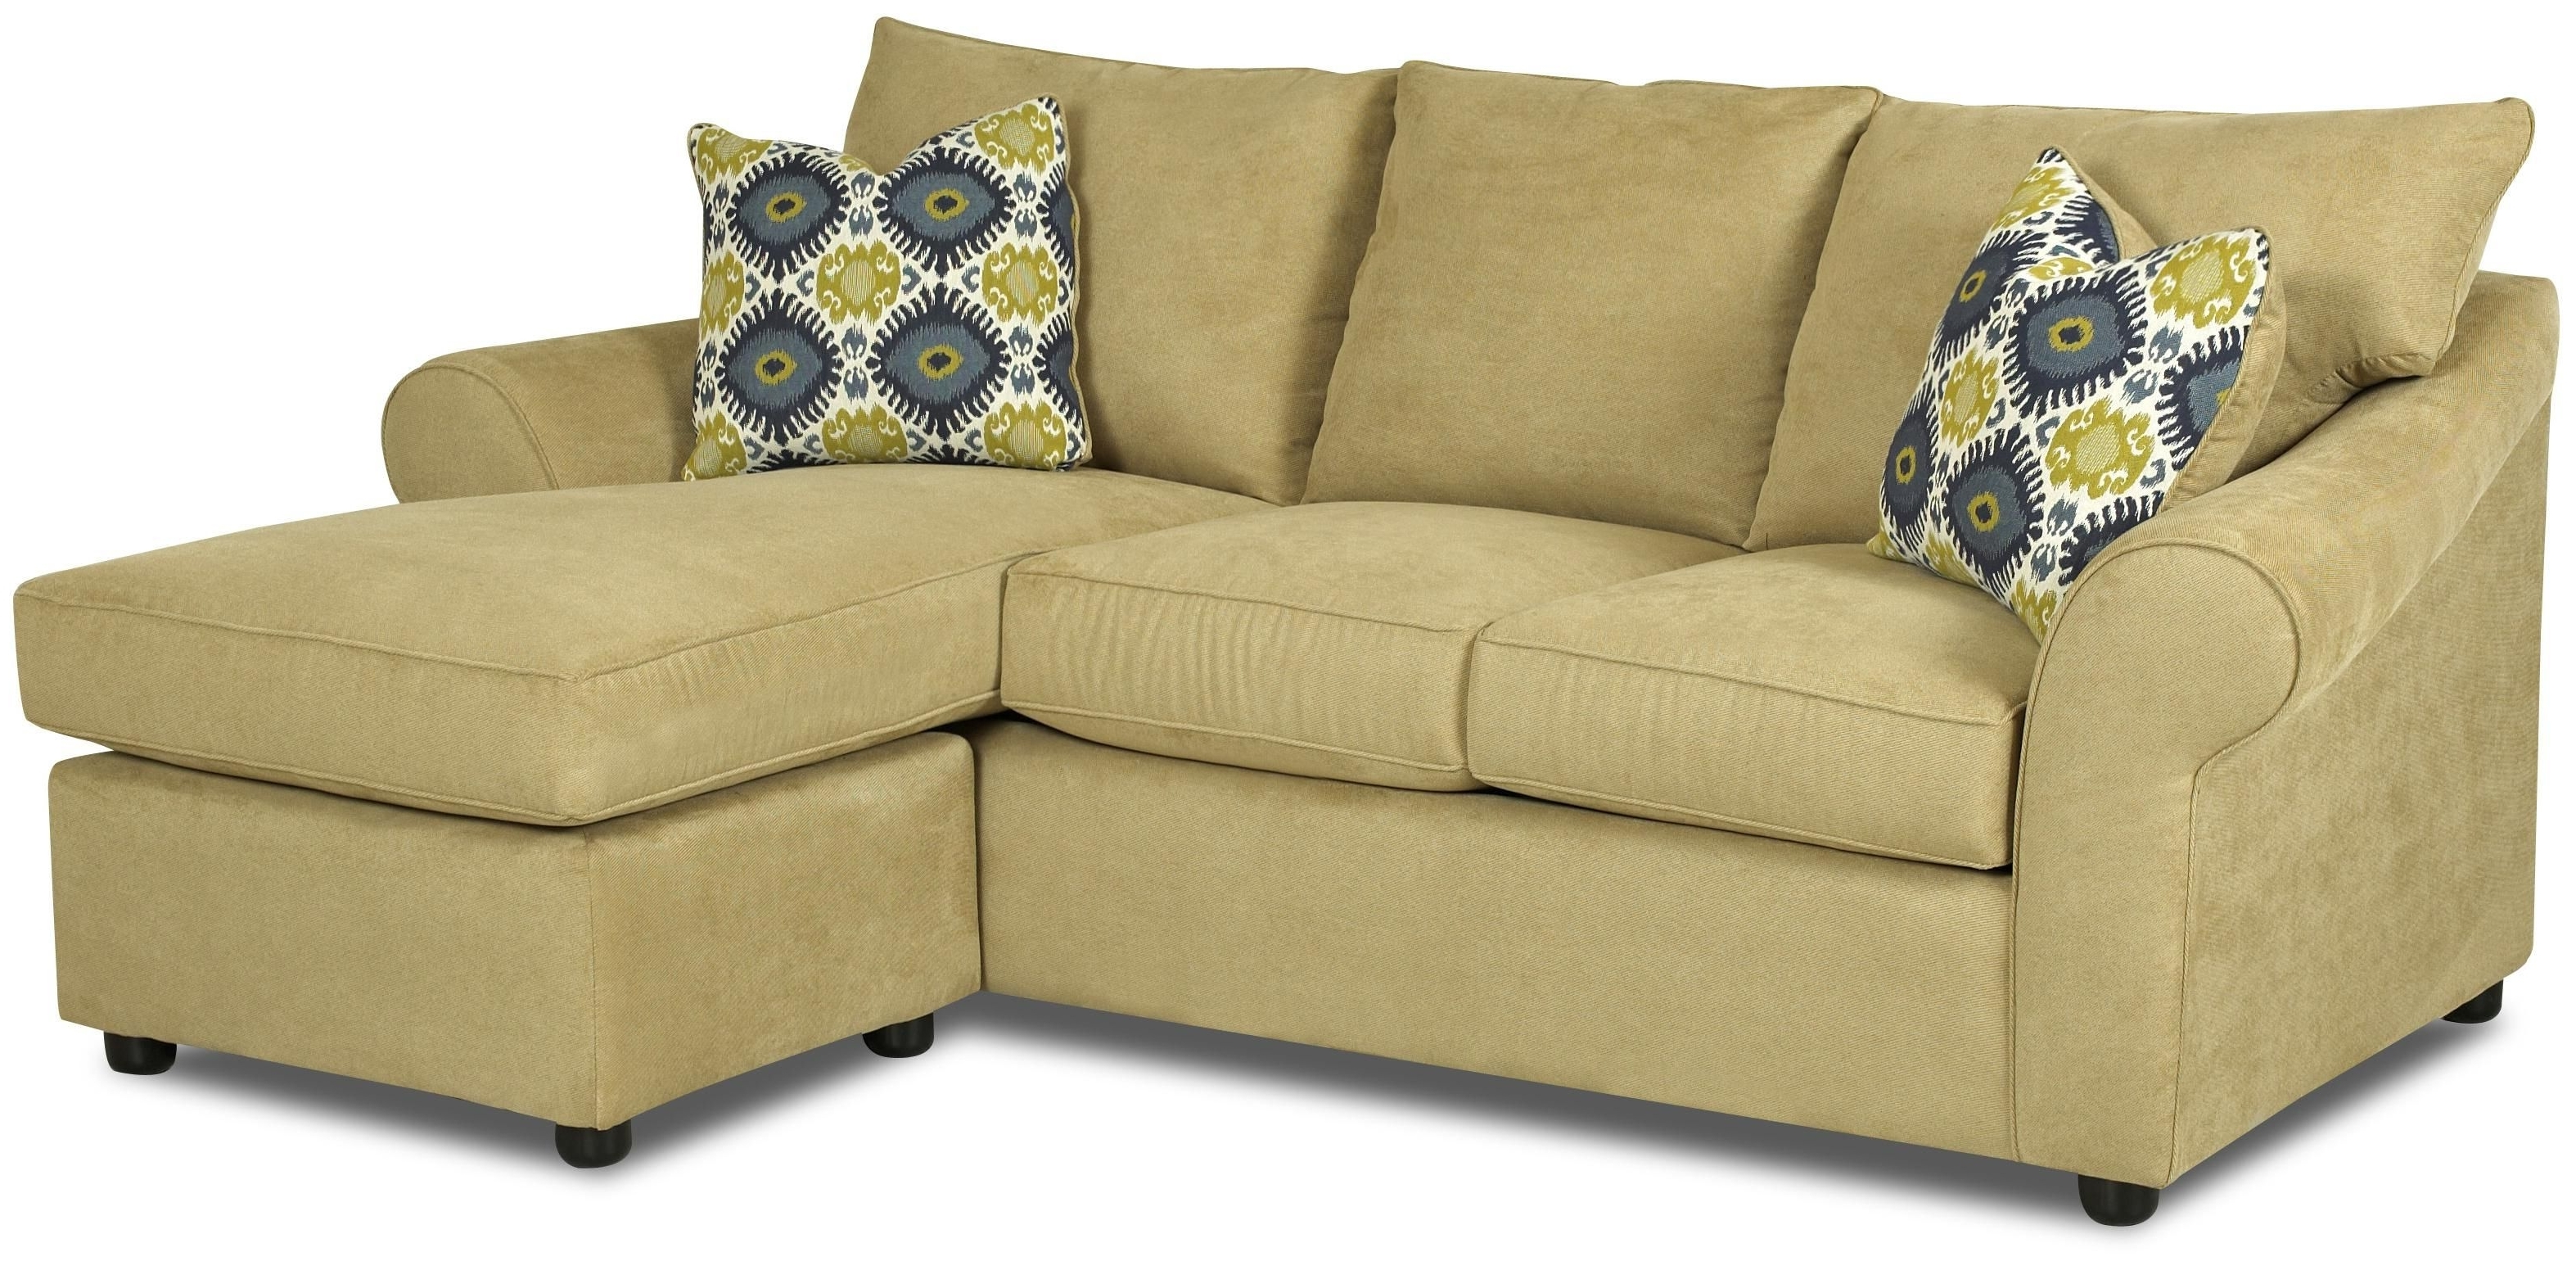 Current Couch Chaise Lounges Within Couch With Chaise Lounge Attached (View 3 of 15)